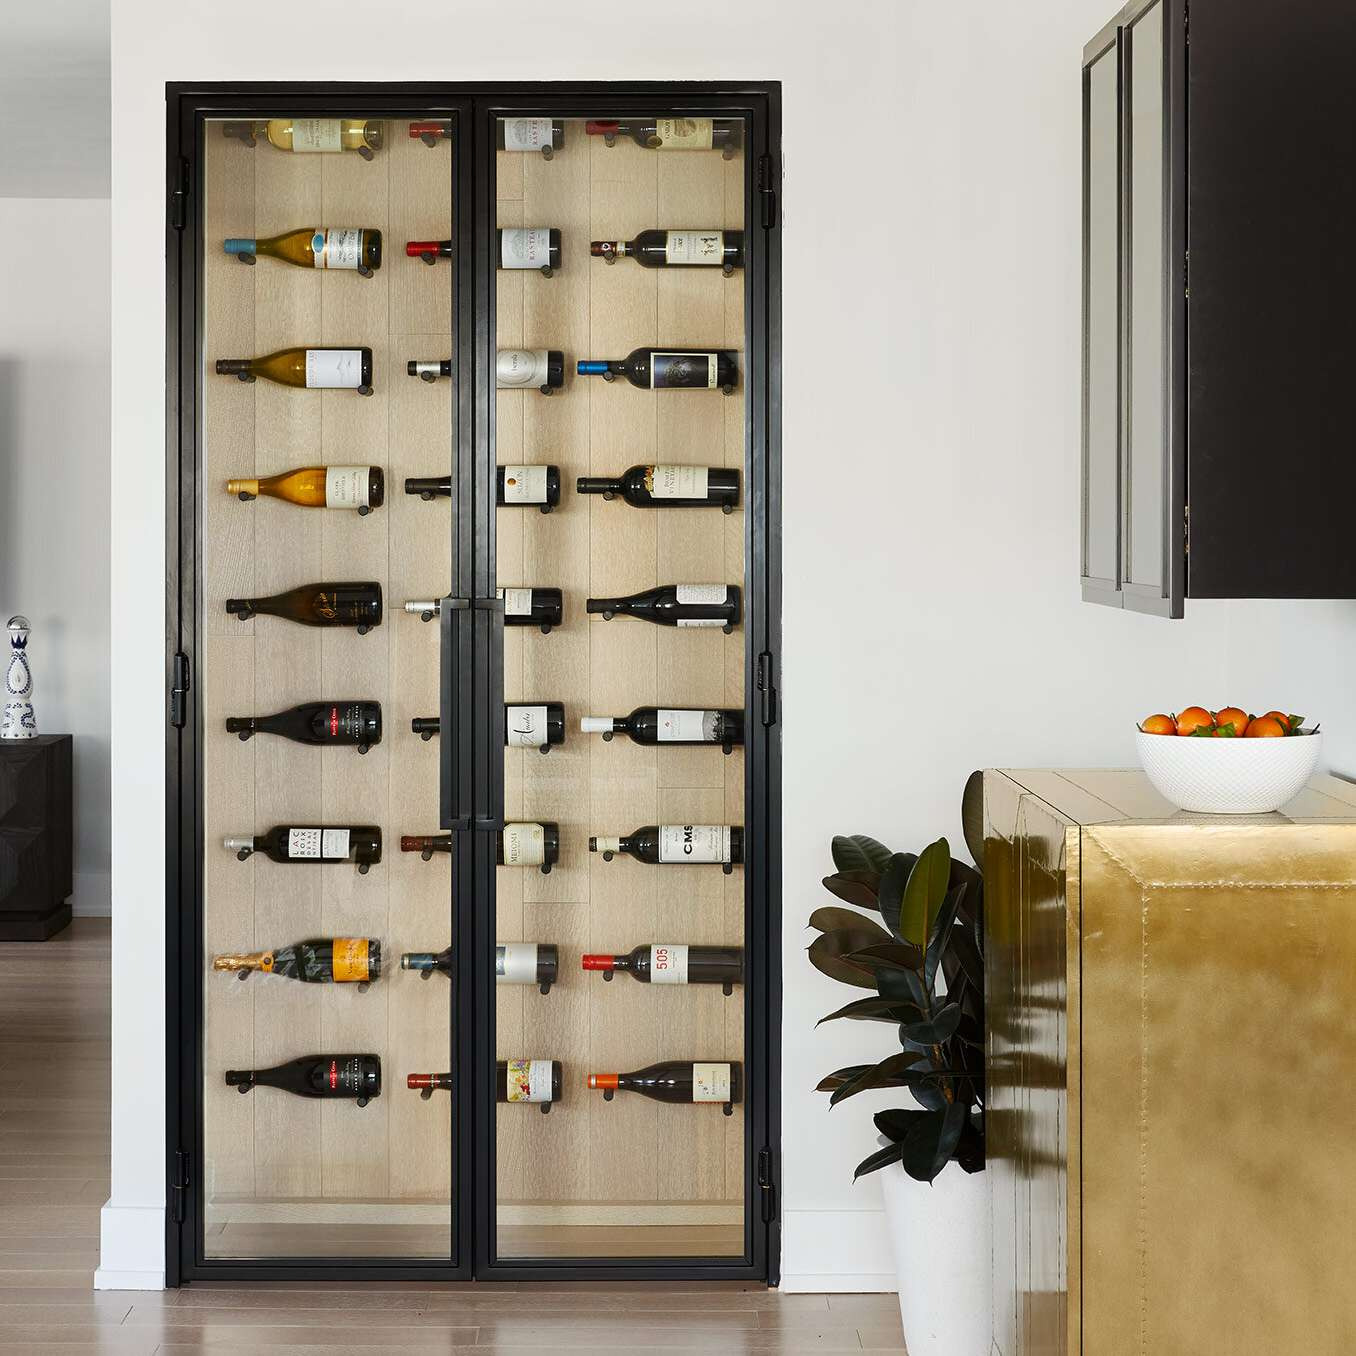 A small kitchen with a built-in wine cellar